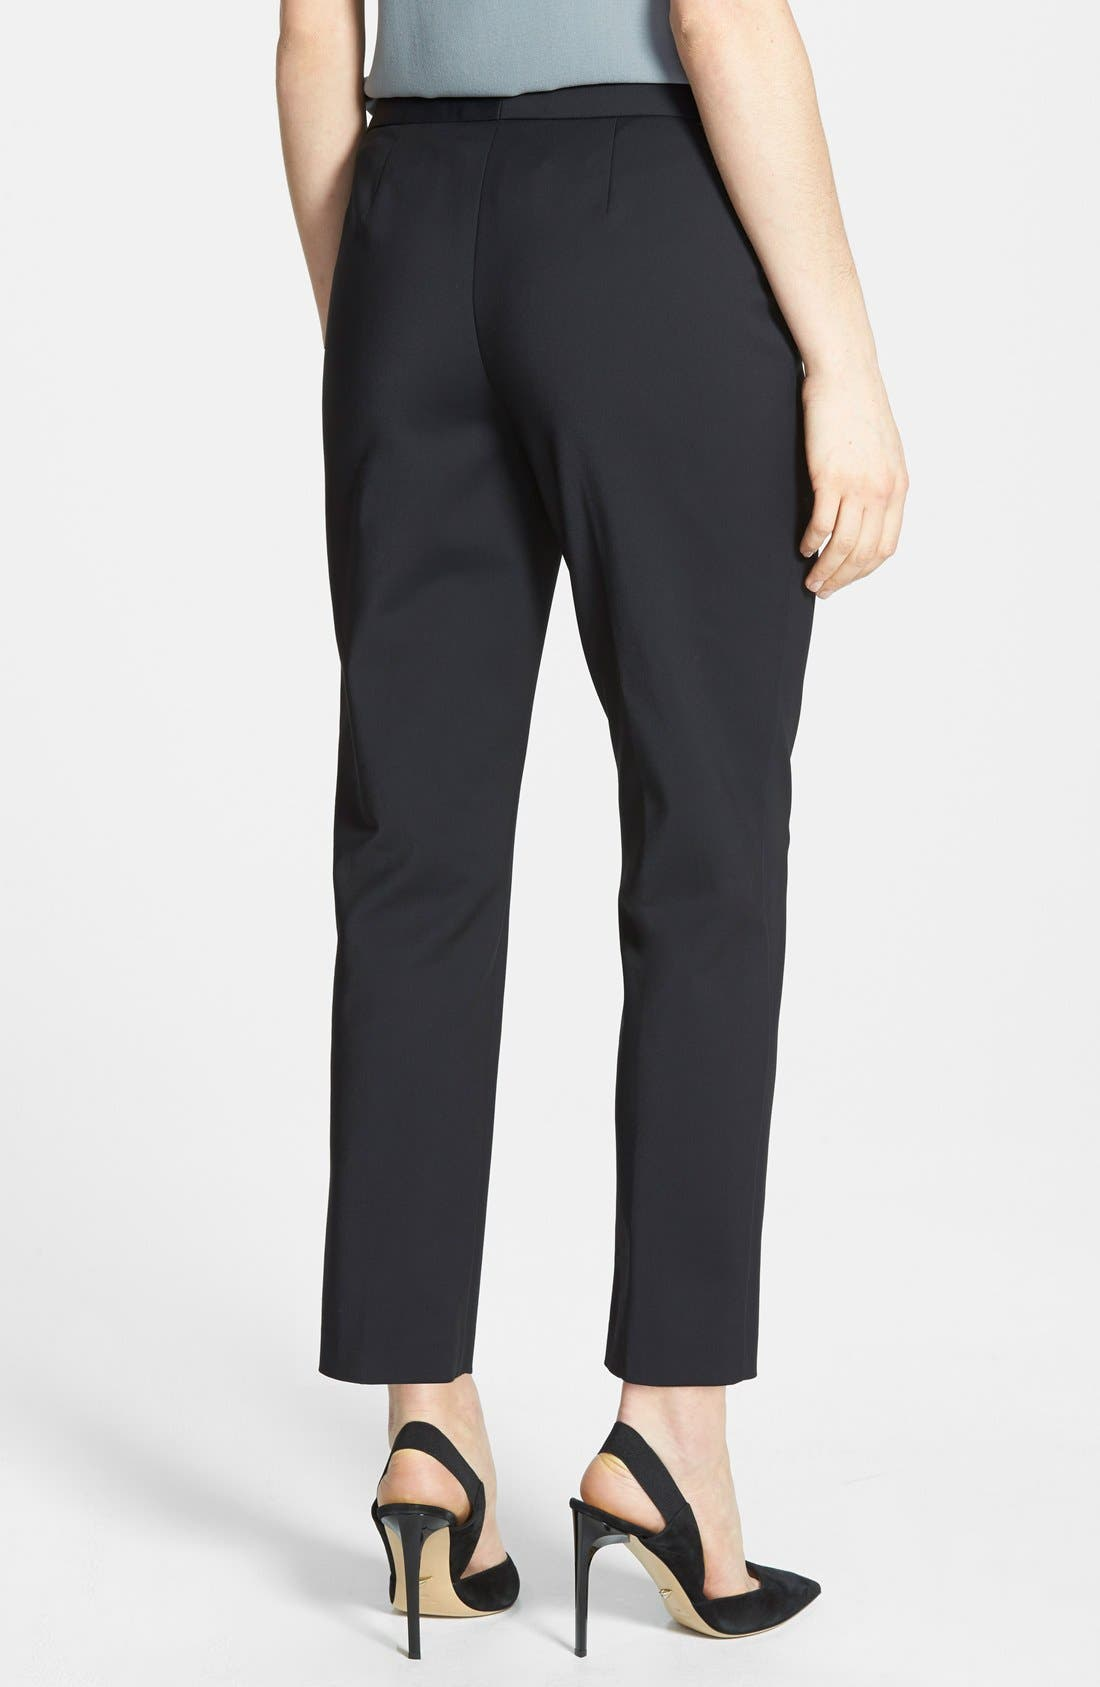 NORDSTROM COLLECTION,                             'Veloria' Slim Ankle Pants,                             Alternate thumbnail 3, color,                             001